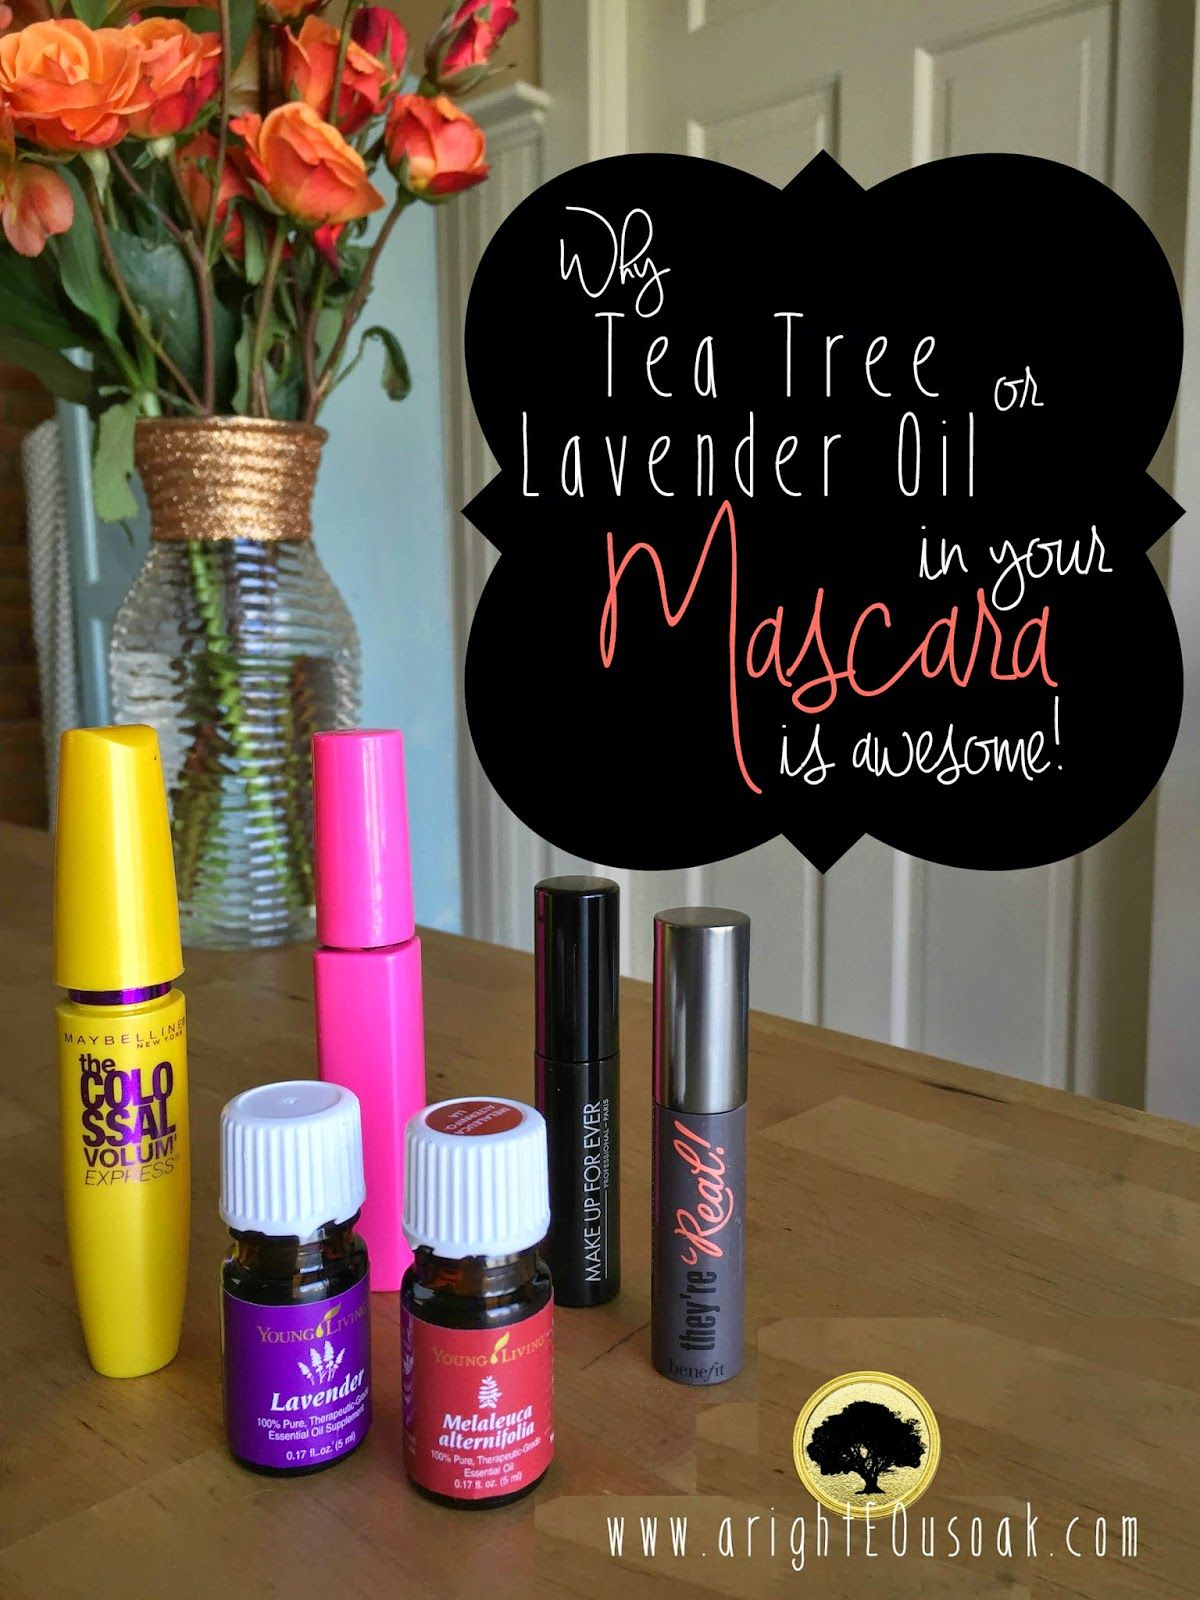 A righteous oak Why Tea Tree or Lavender Oil in your Mascara is